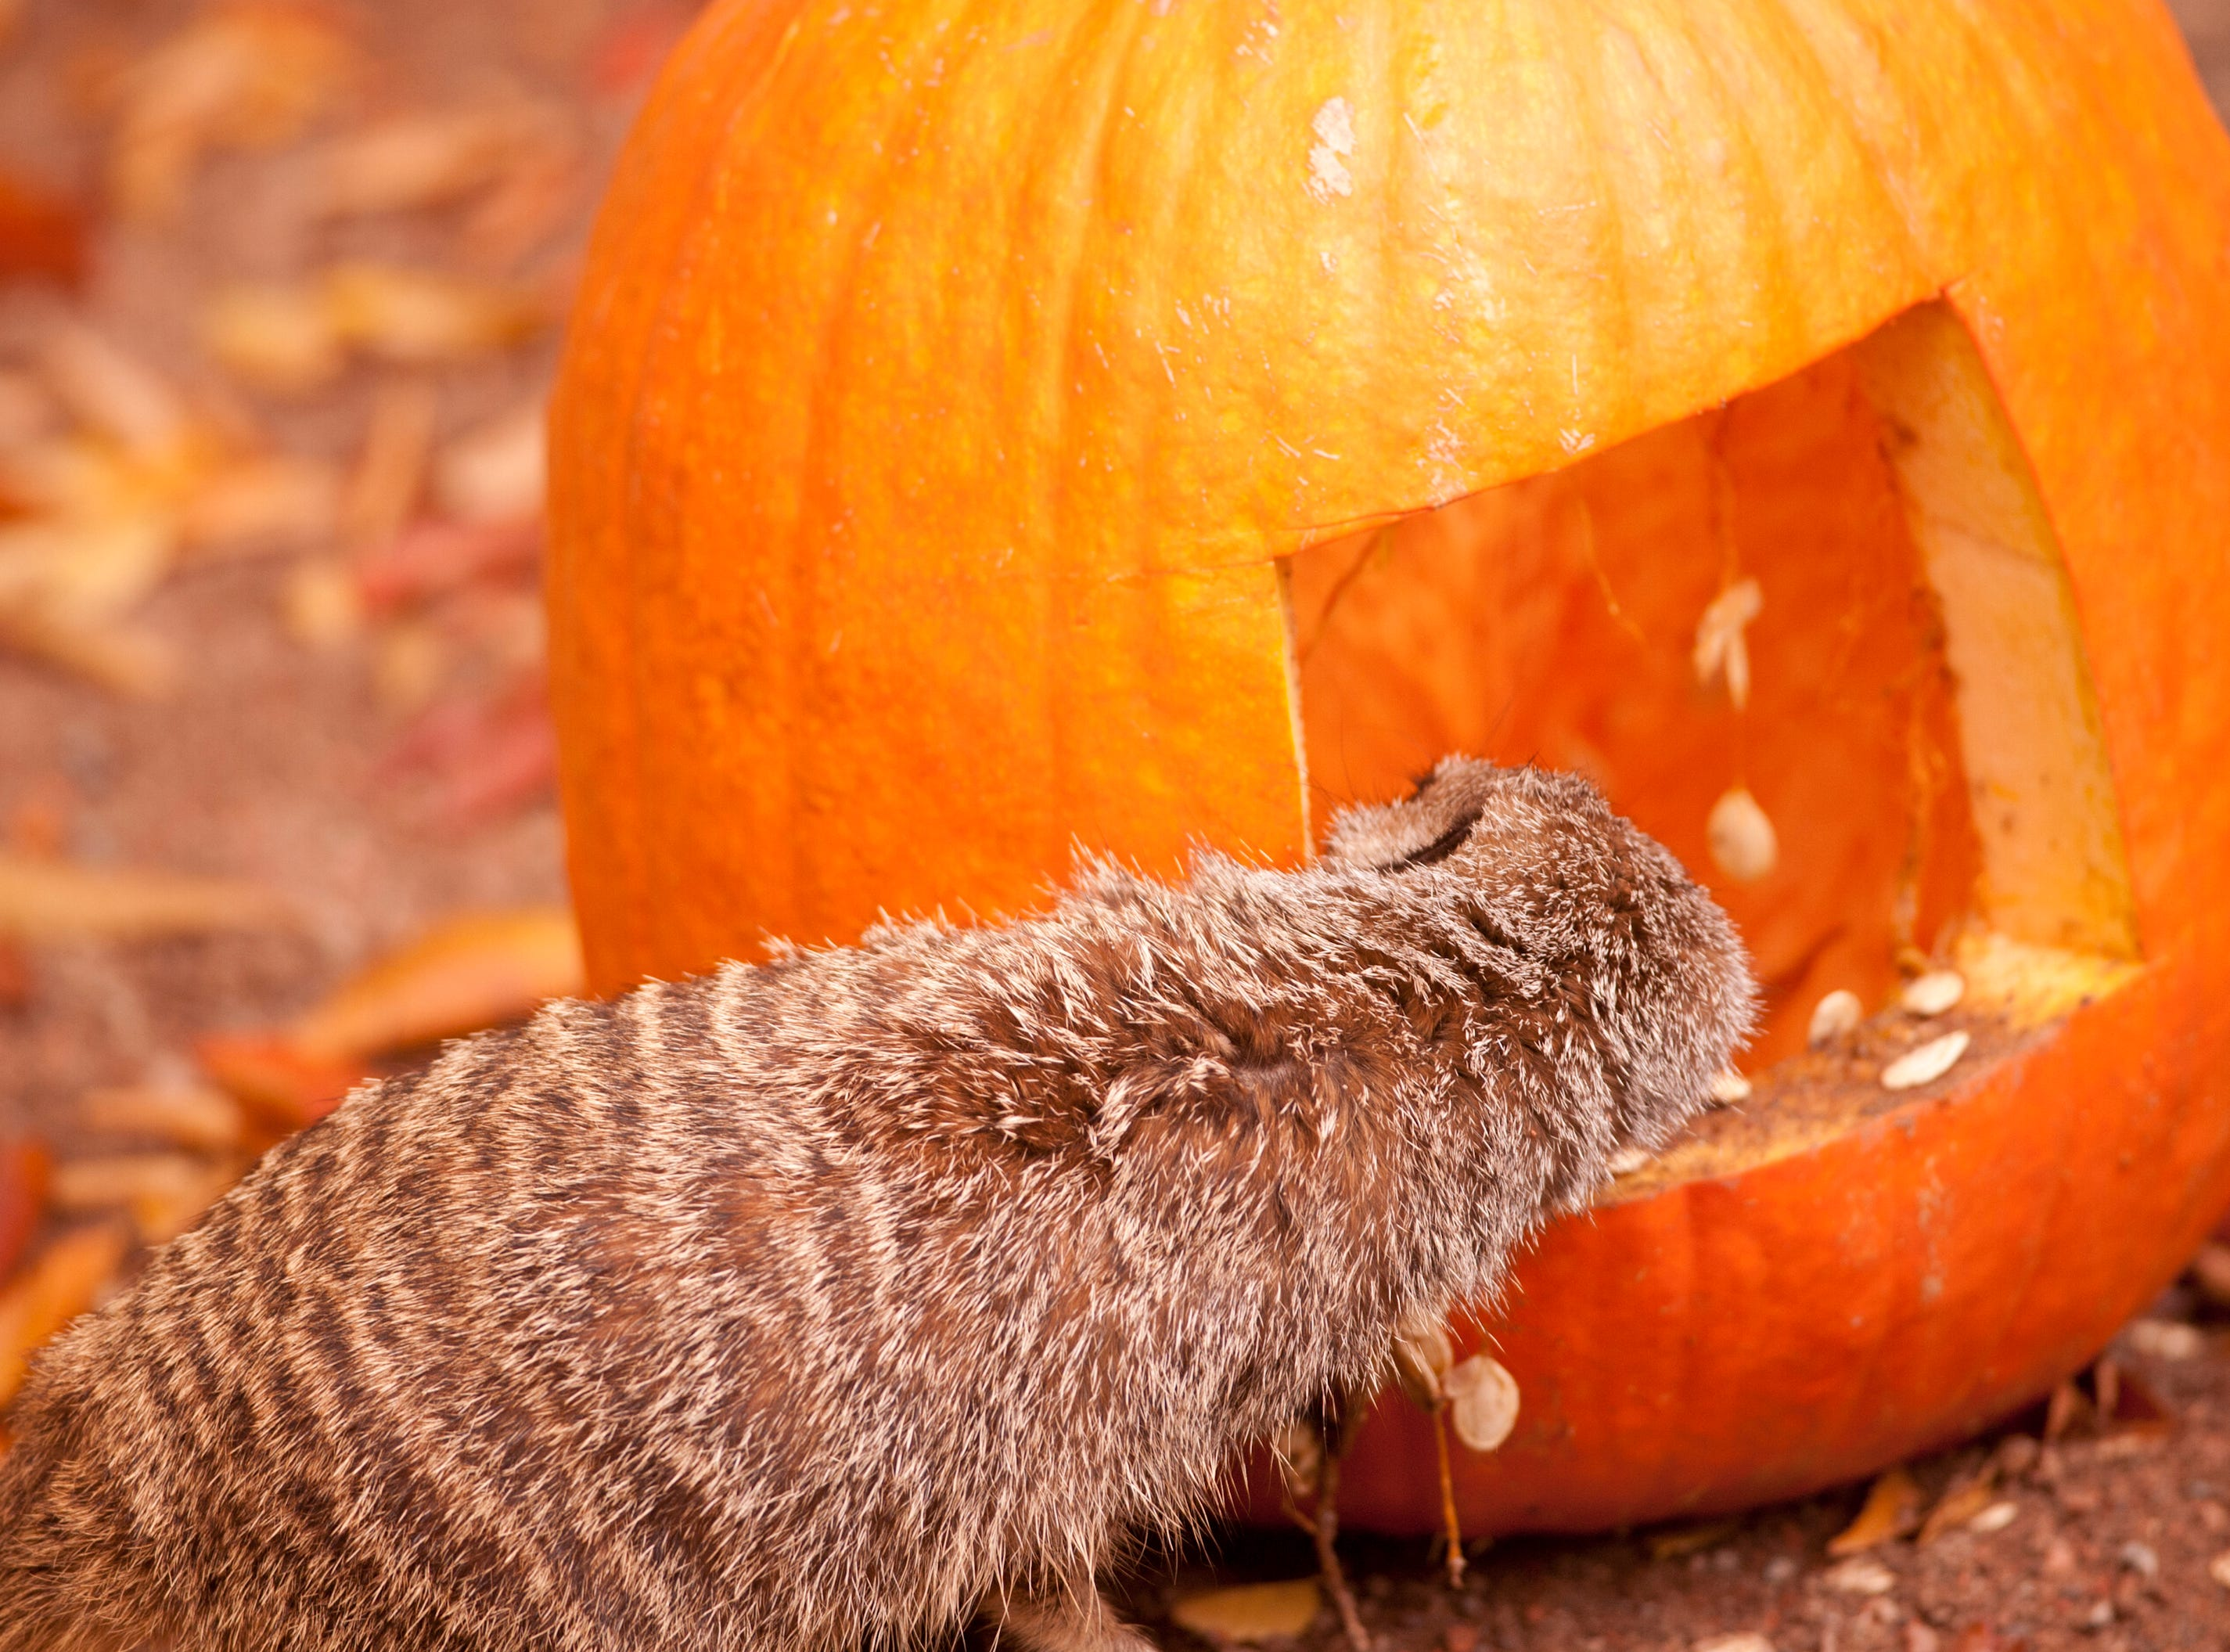 A meerkat peers inside a pumpkin at the Louisville Zoo's annual pumpkin smash. The pumpkins being fed to the animals are from the zoo's Halloween event. November 04, 2018